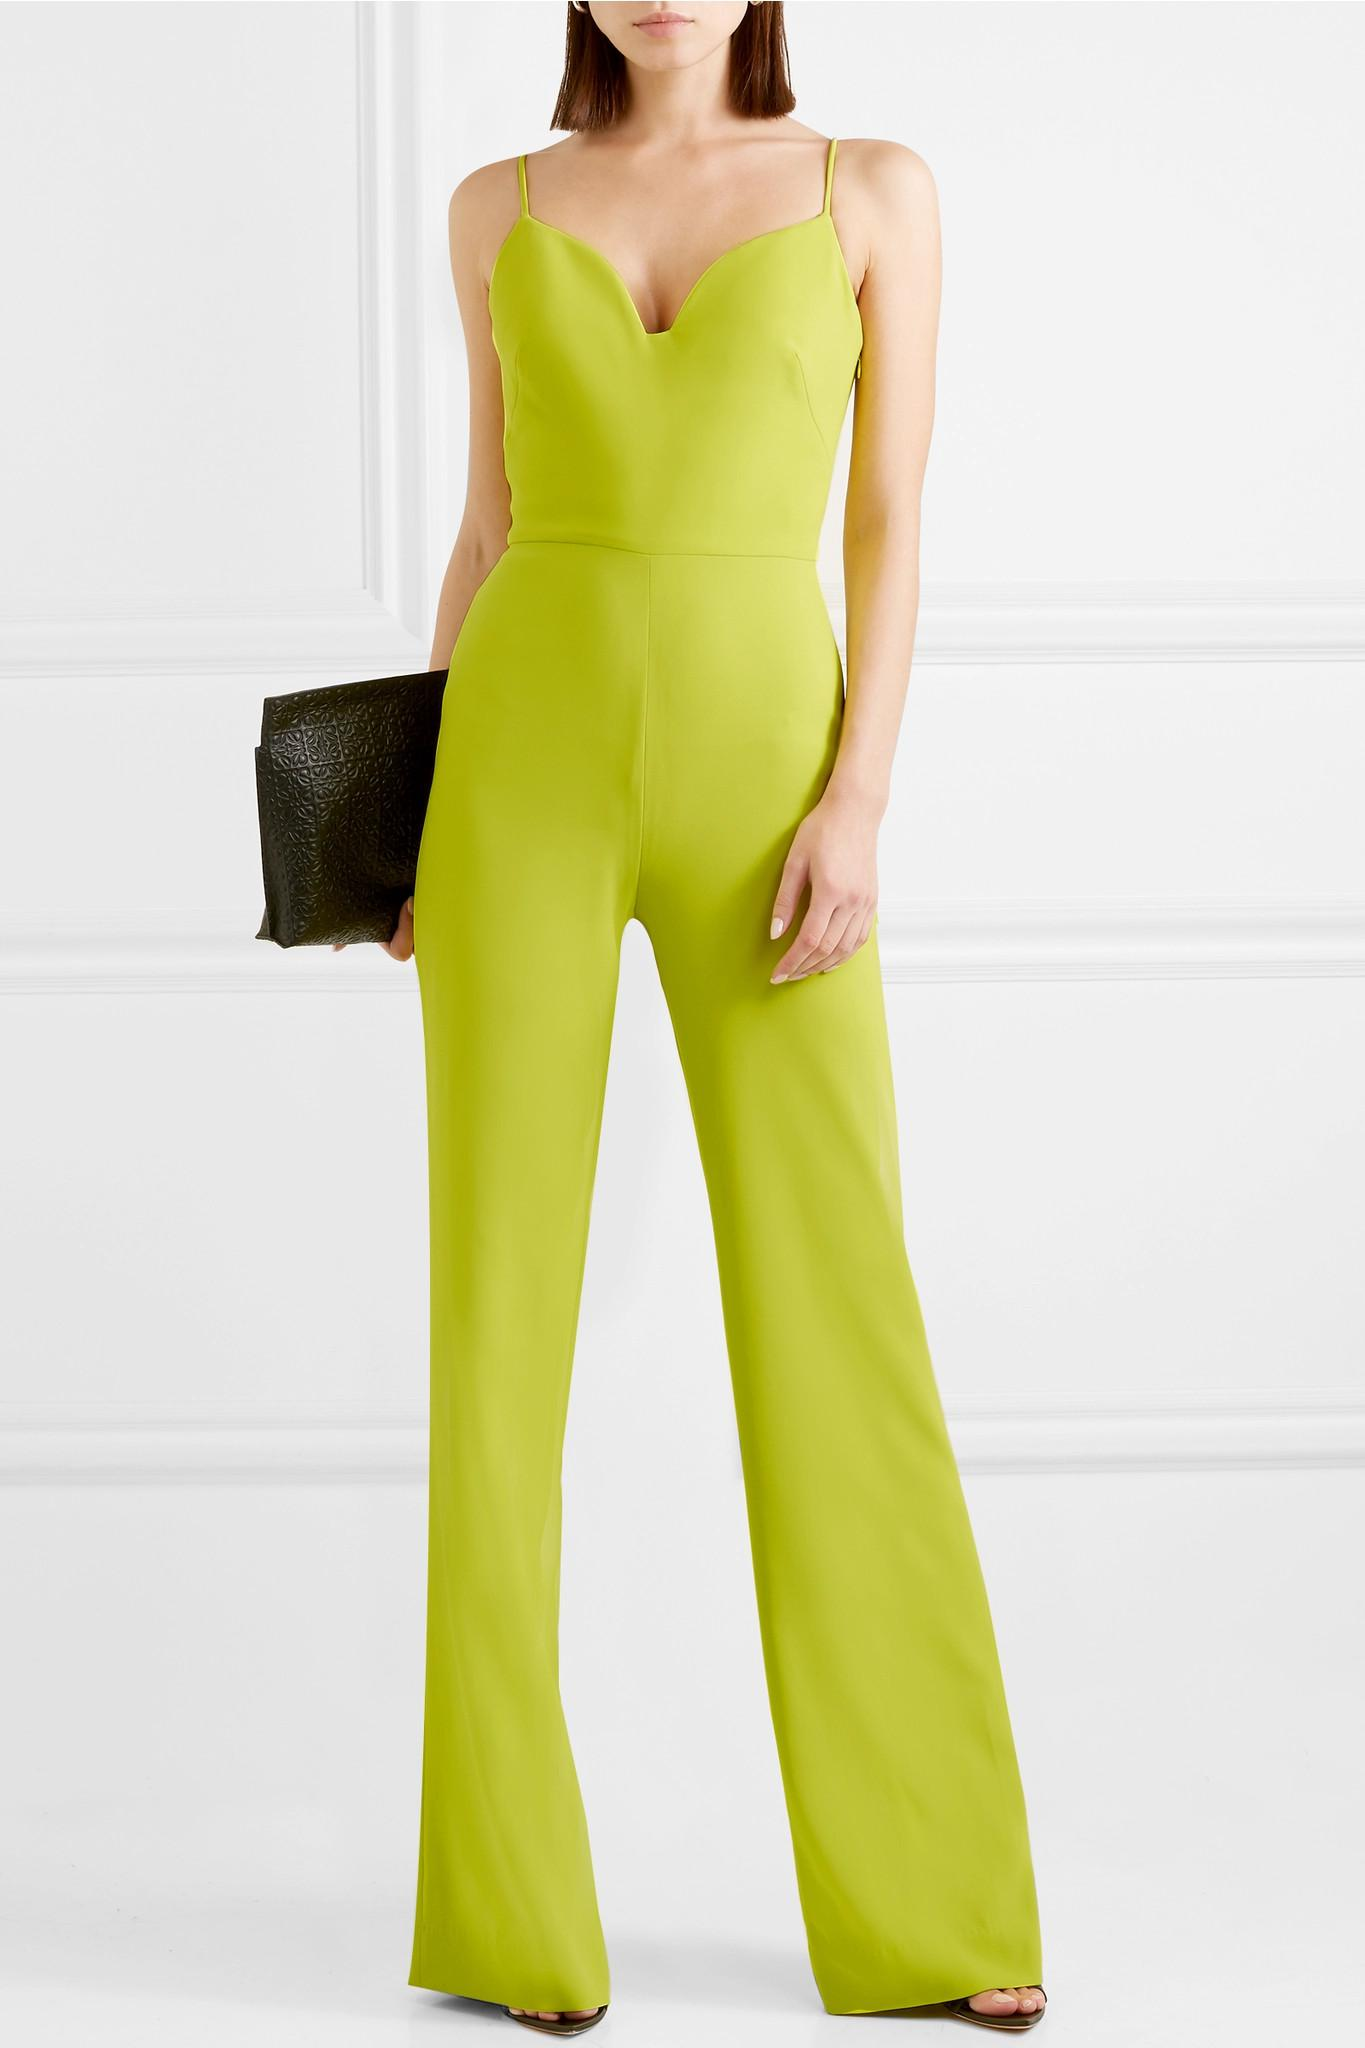 027e0d12704 Lyst - Brandon Maxwell Stretch-crepe Jumpsuit in Yellow - Save 80%